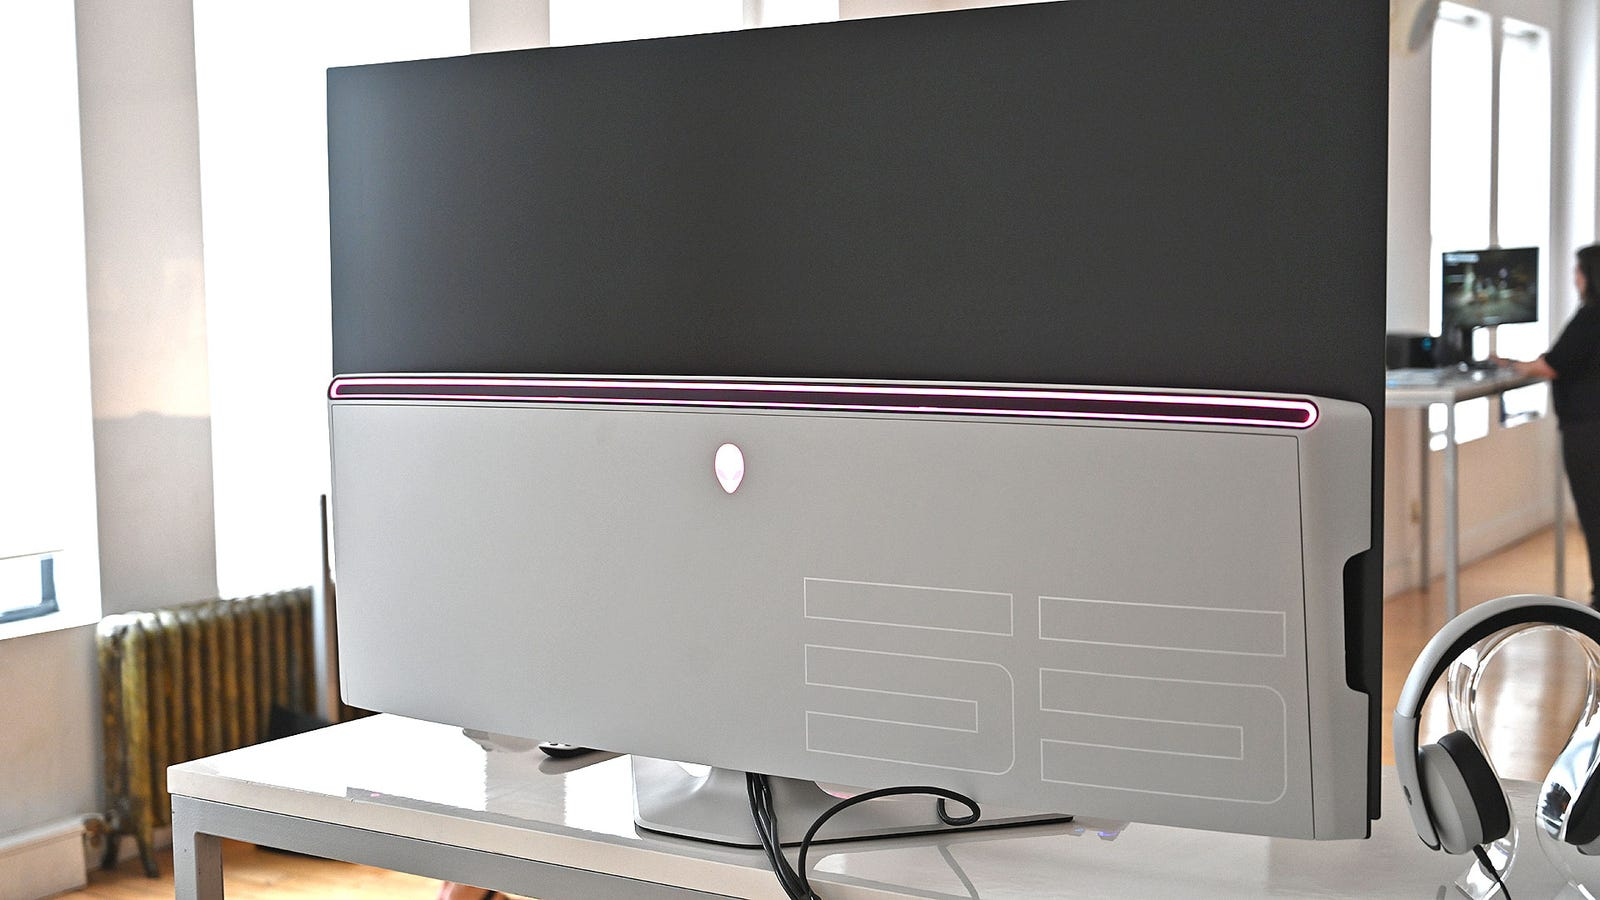 Illustration for article titled Alienware Made the Worlds First 55-inch OLED Gaming Monitor, and It Looks Sick